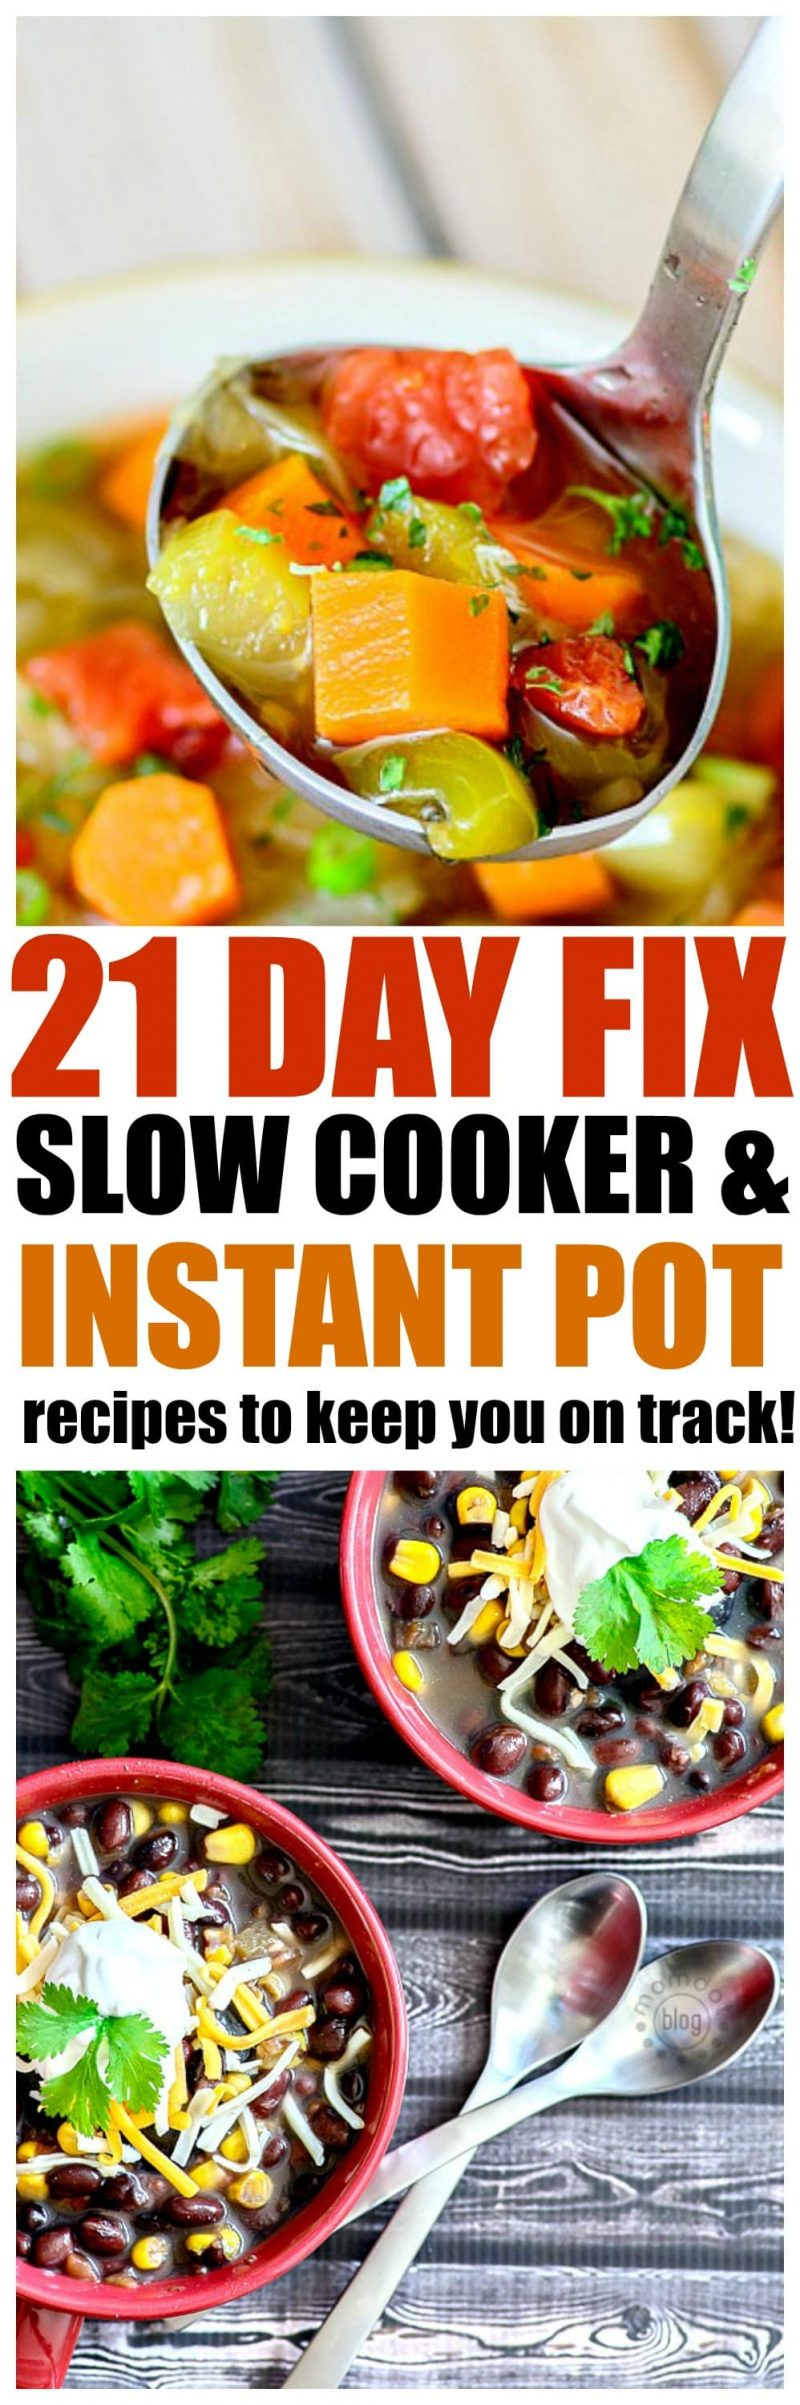 21 Slow Cooker and Instant Pot 21 Day Fix Recipes to keep you on track with your 21 day fix diet, delicious options!